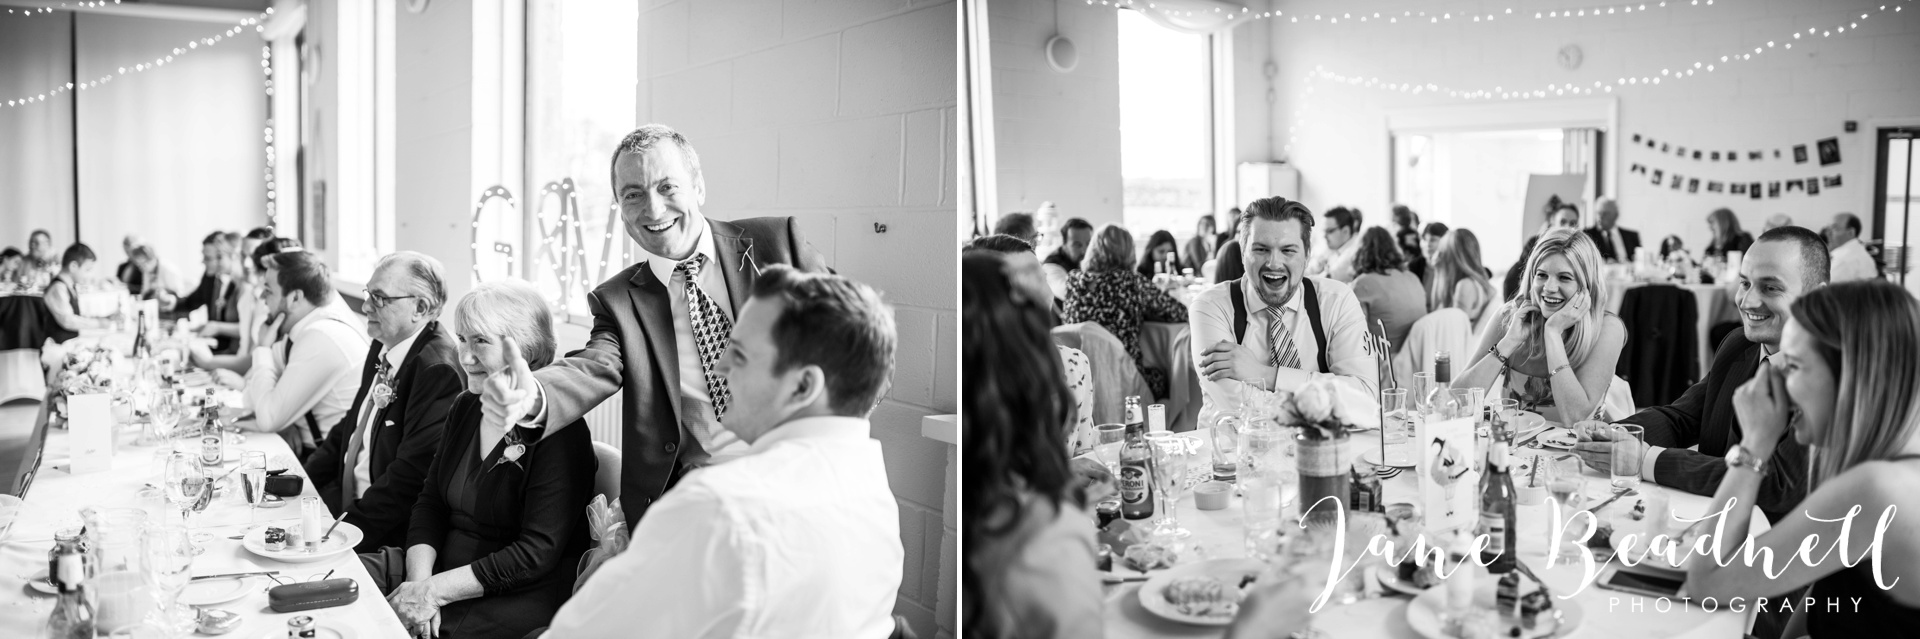 Cracoe Village Hall Wedding Photography by Jane Beadnell Photography fine art wedding photographer Yorkshire_0082